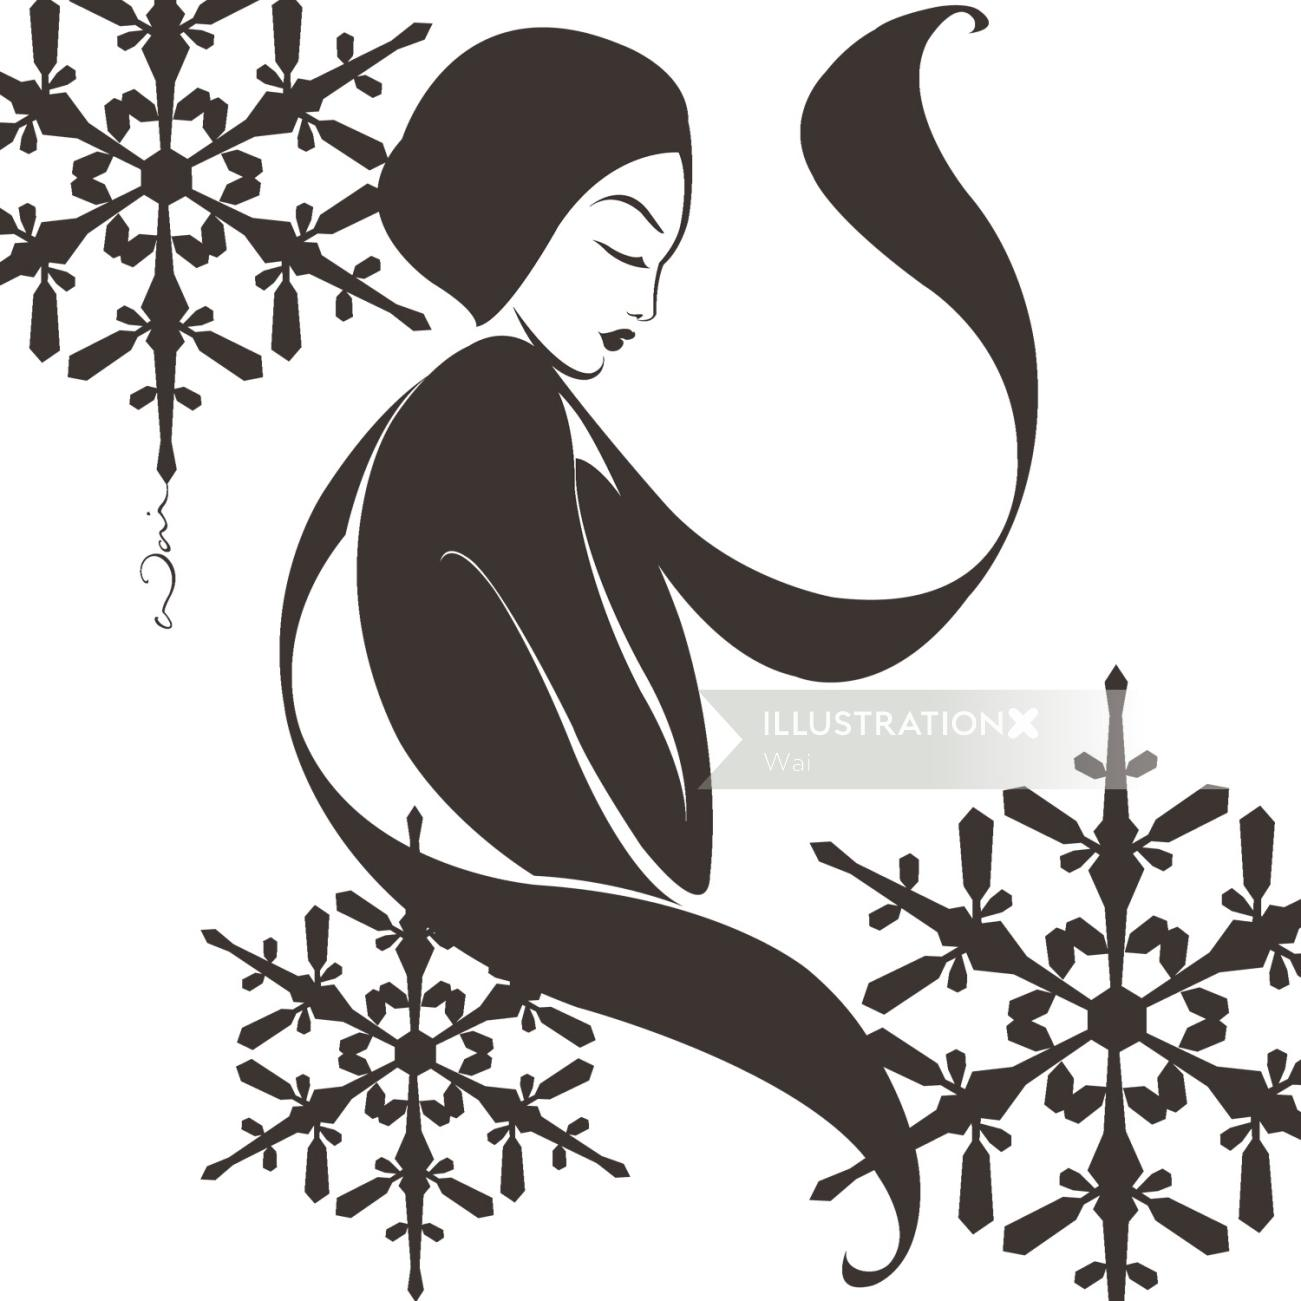 Black and White illustration of a woman rugged up for winter in a scarf and hat, with snowflakes fal